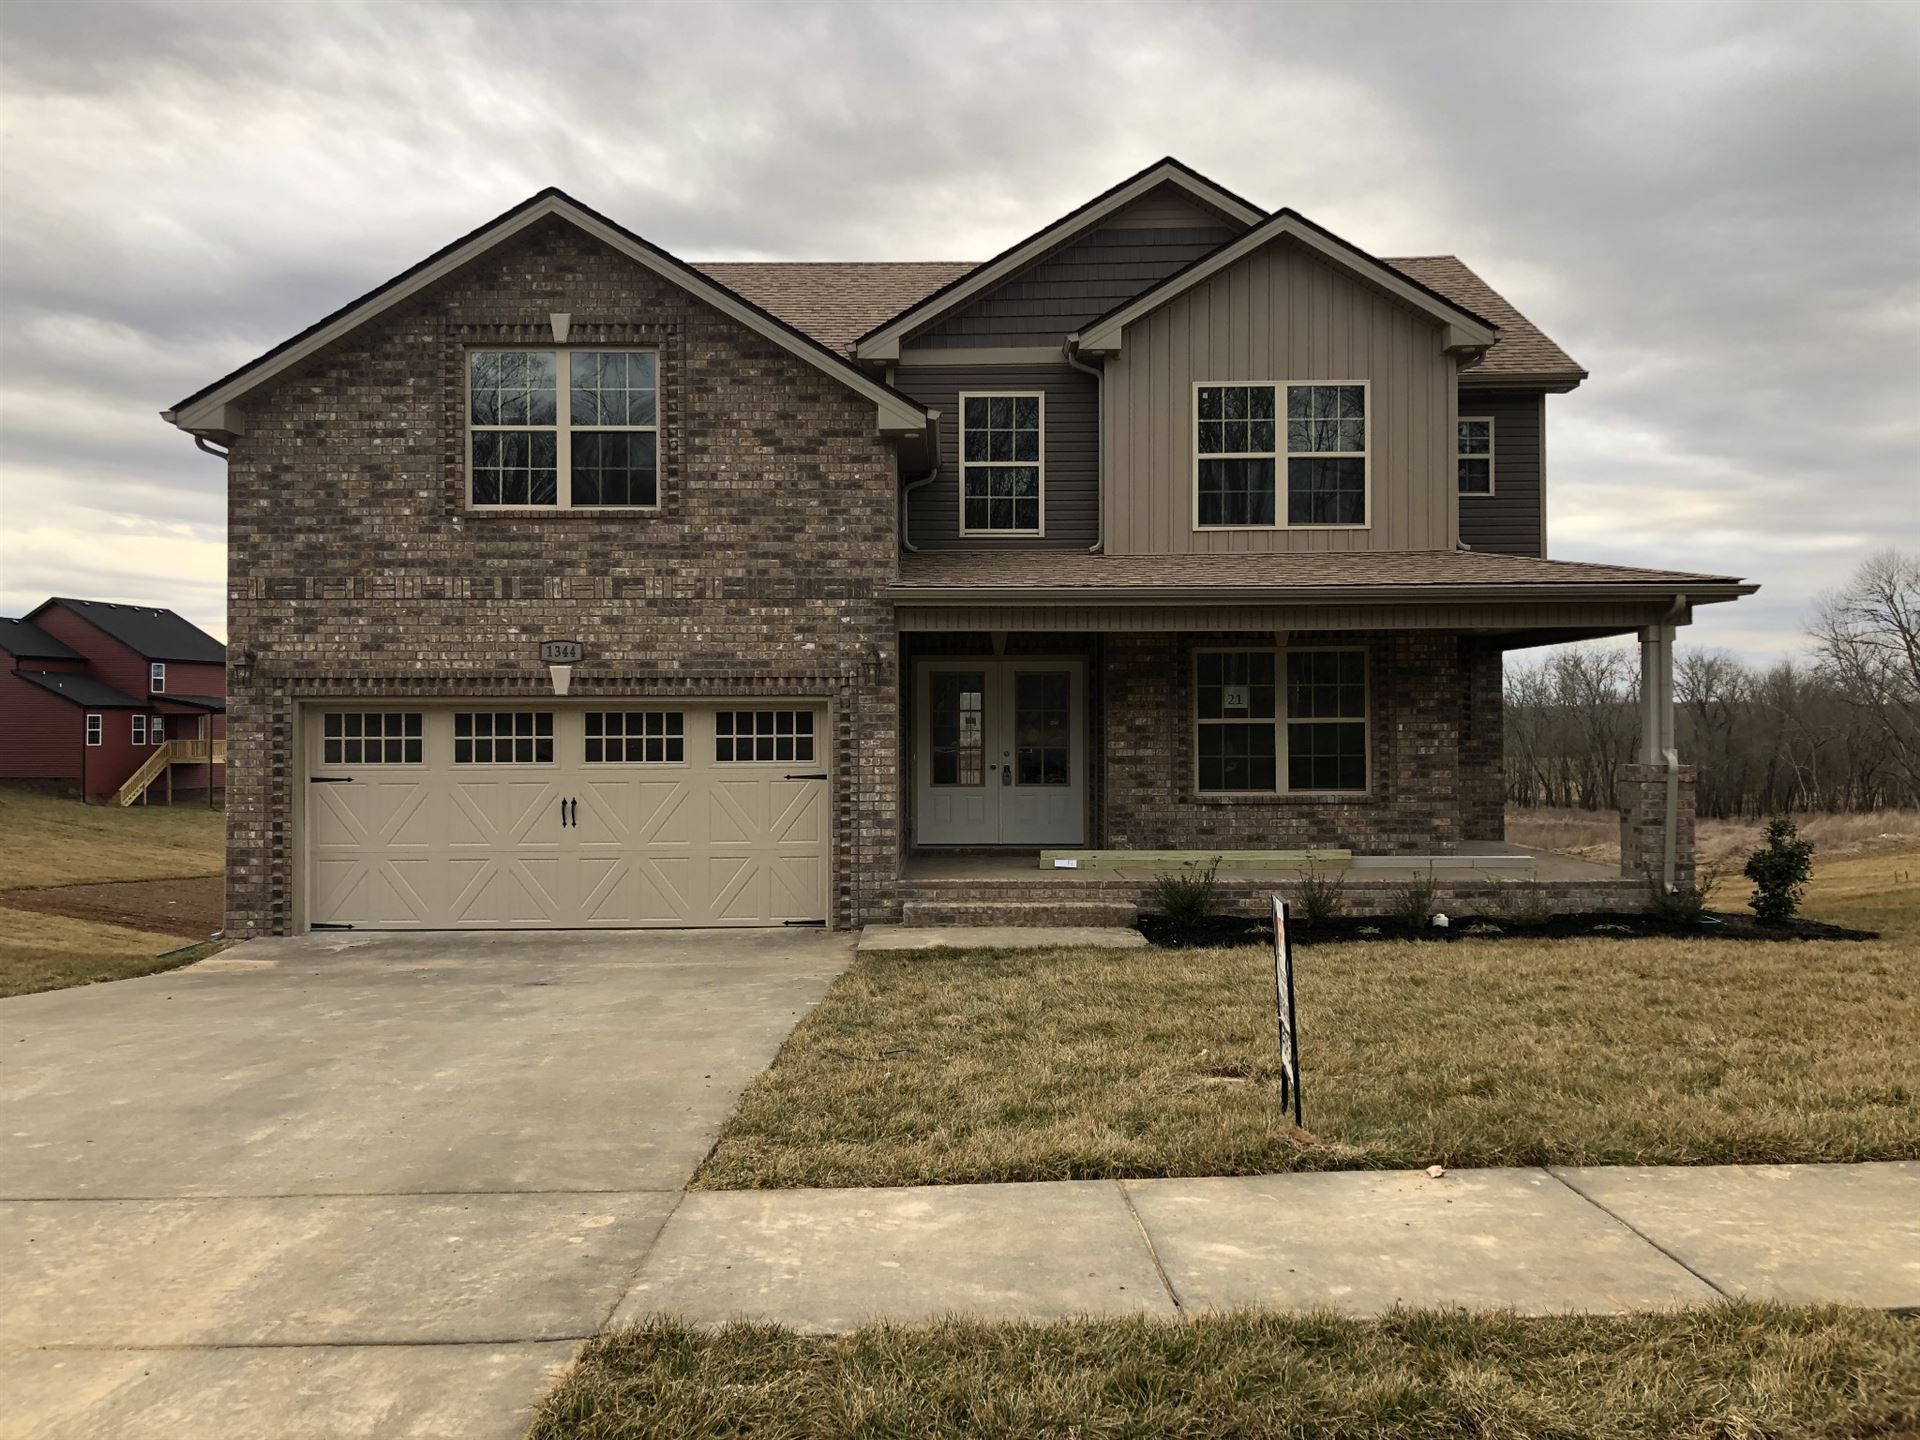 21 River Chase, Clarksville, TN 37043 - MLS#: 2205574